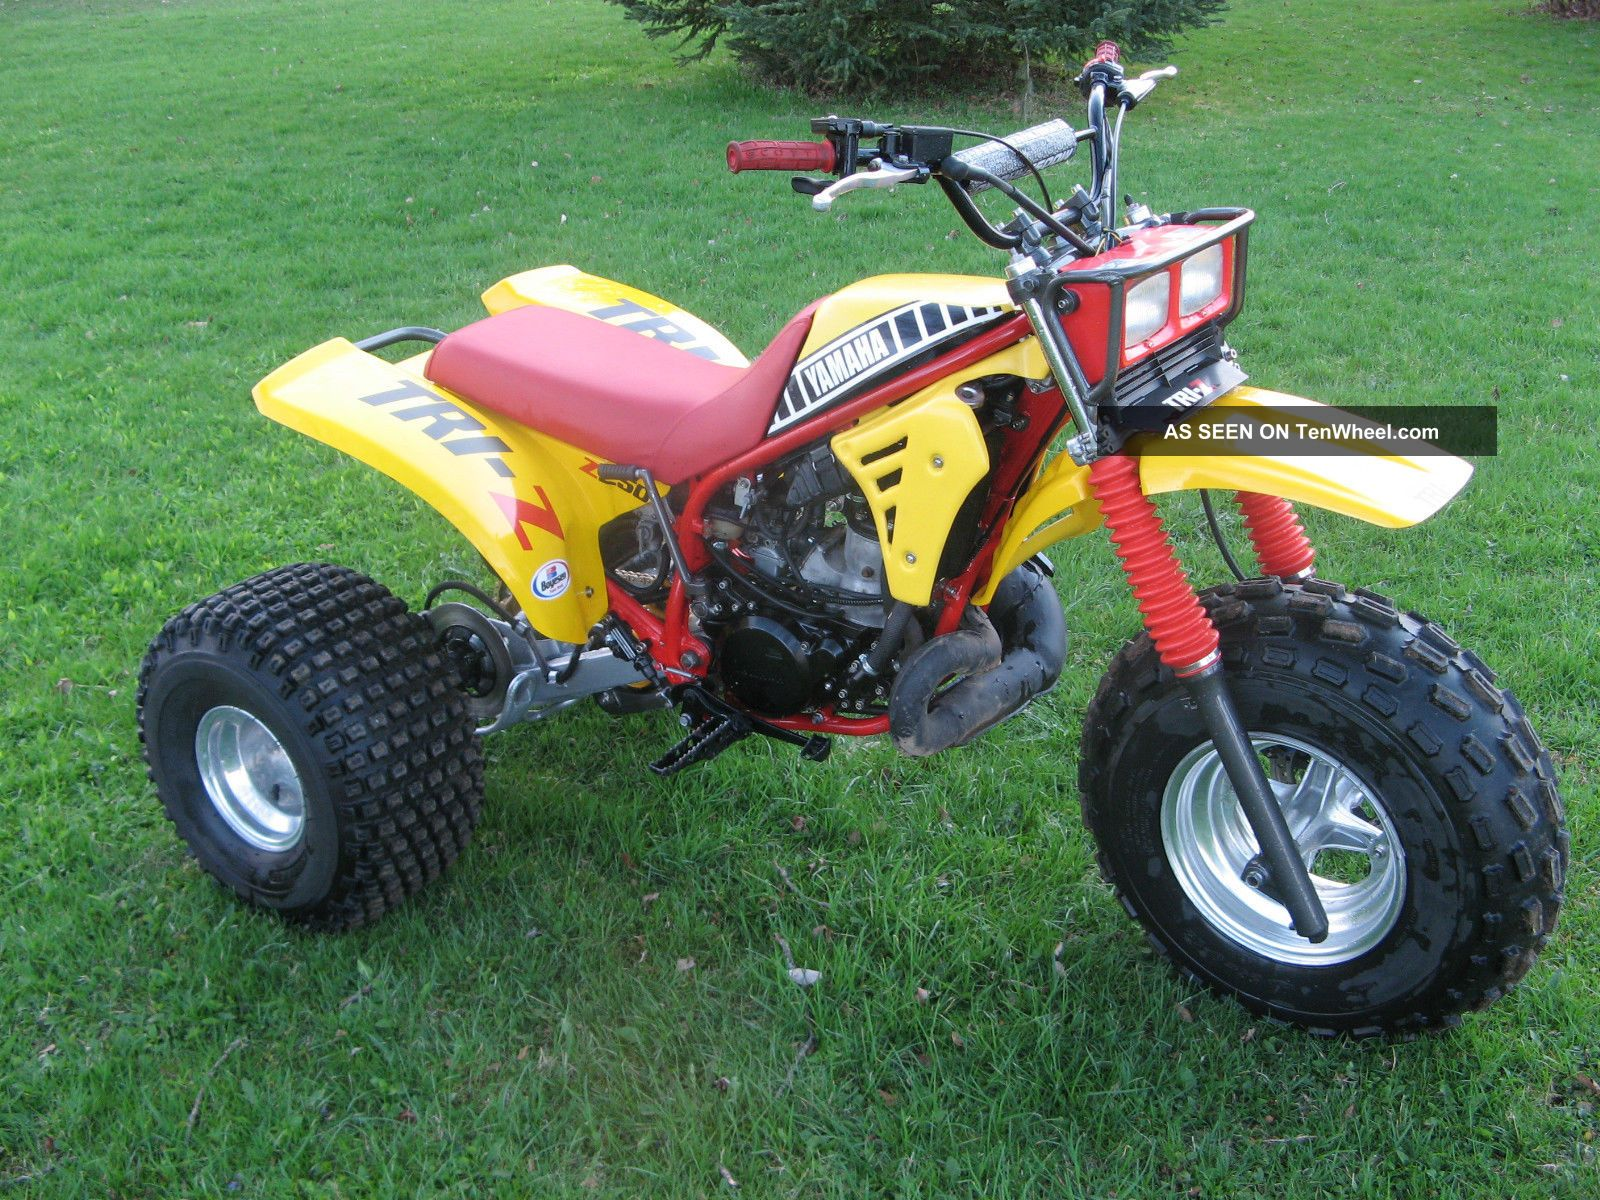 1984 Honda Trx 200 Wiring Ask Answer Diagram For Trx200 200es 250r Elsalvadorla Neutral Switch Problems Parts